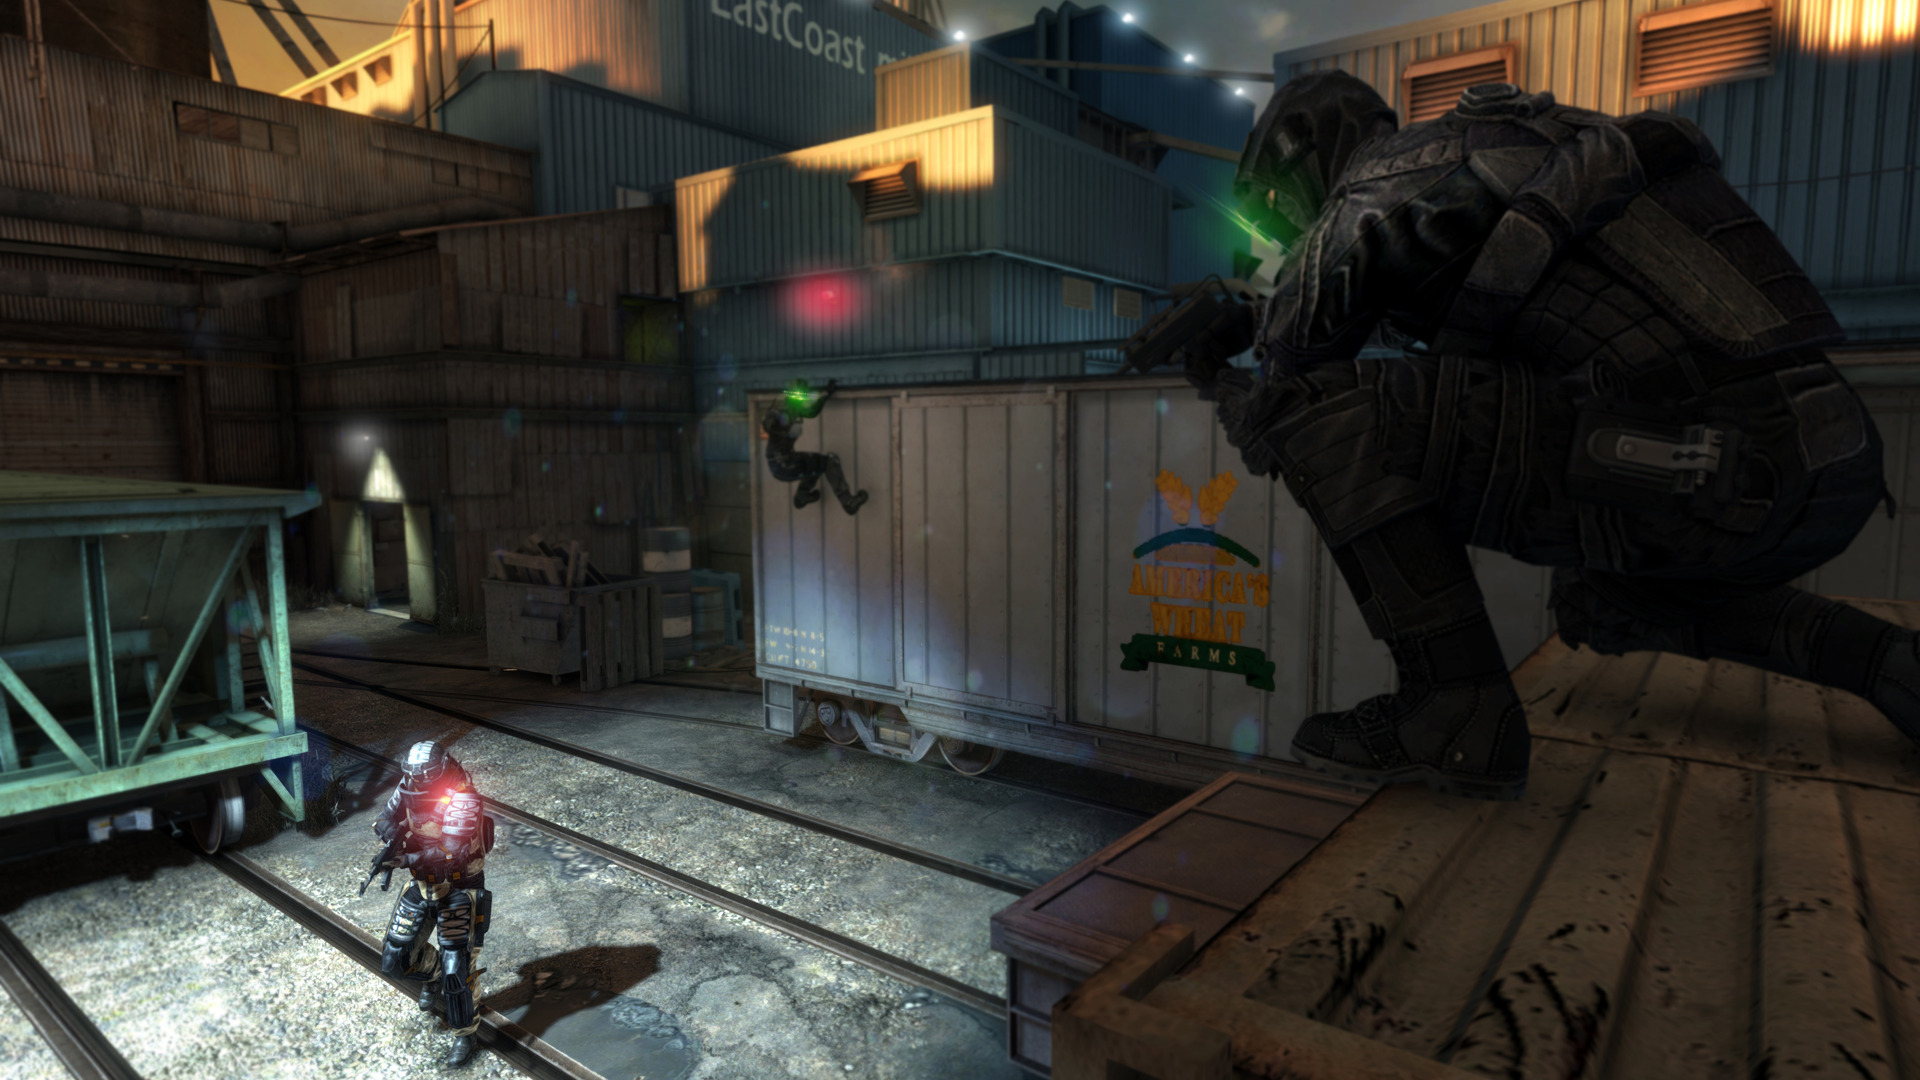 Image from old Splinter Cell game